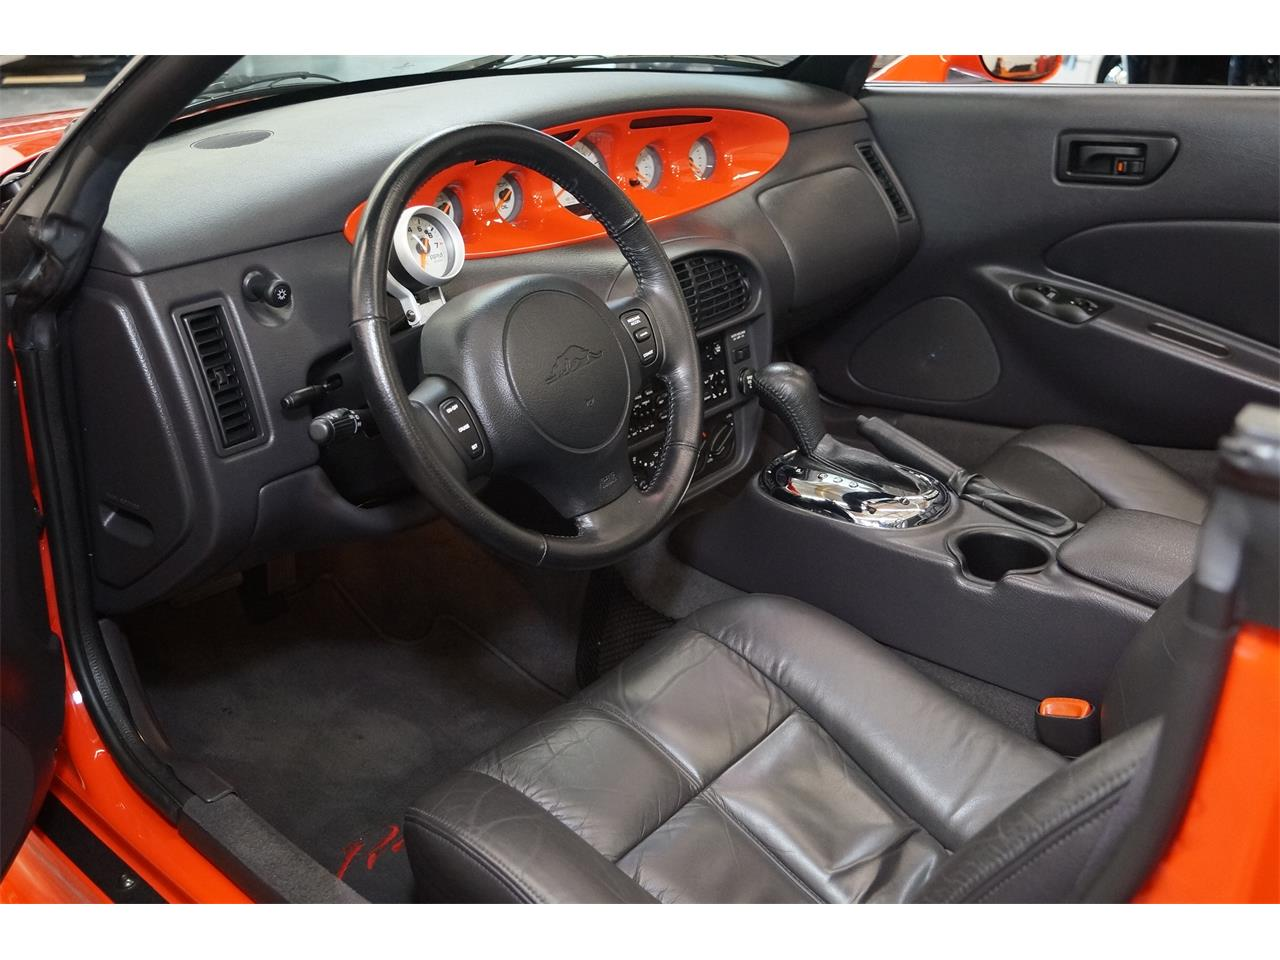 2000 Plymouth Prowler for sale in Thousand Oaks, CA – photo 10